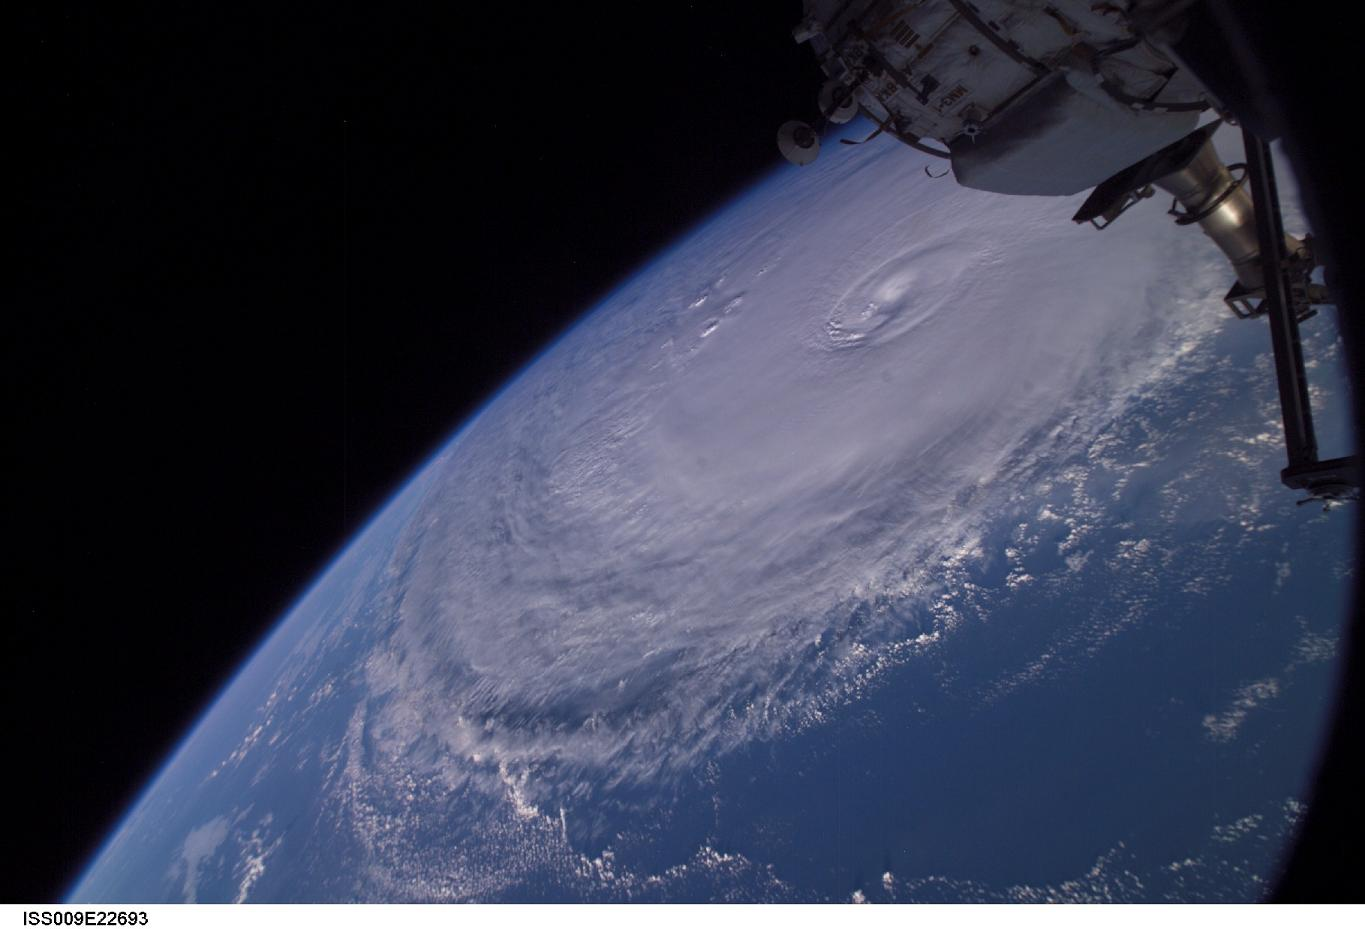 an analysis of the hurricane and the ferocity of mother nature Does mother nature have a purpose for el niño 11 will el niño affect the tides  and ferocity of the water in drake passage  water near central america  spawns more and stronger hurricanes, which can go as far west as hawaii   the simple models are useful in that specific processes can be analyzed and  dissected.